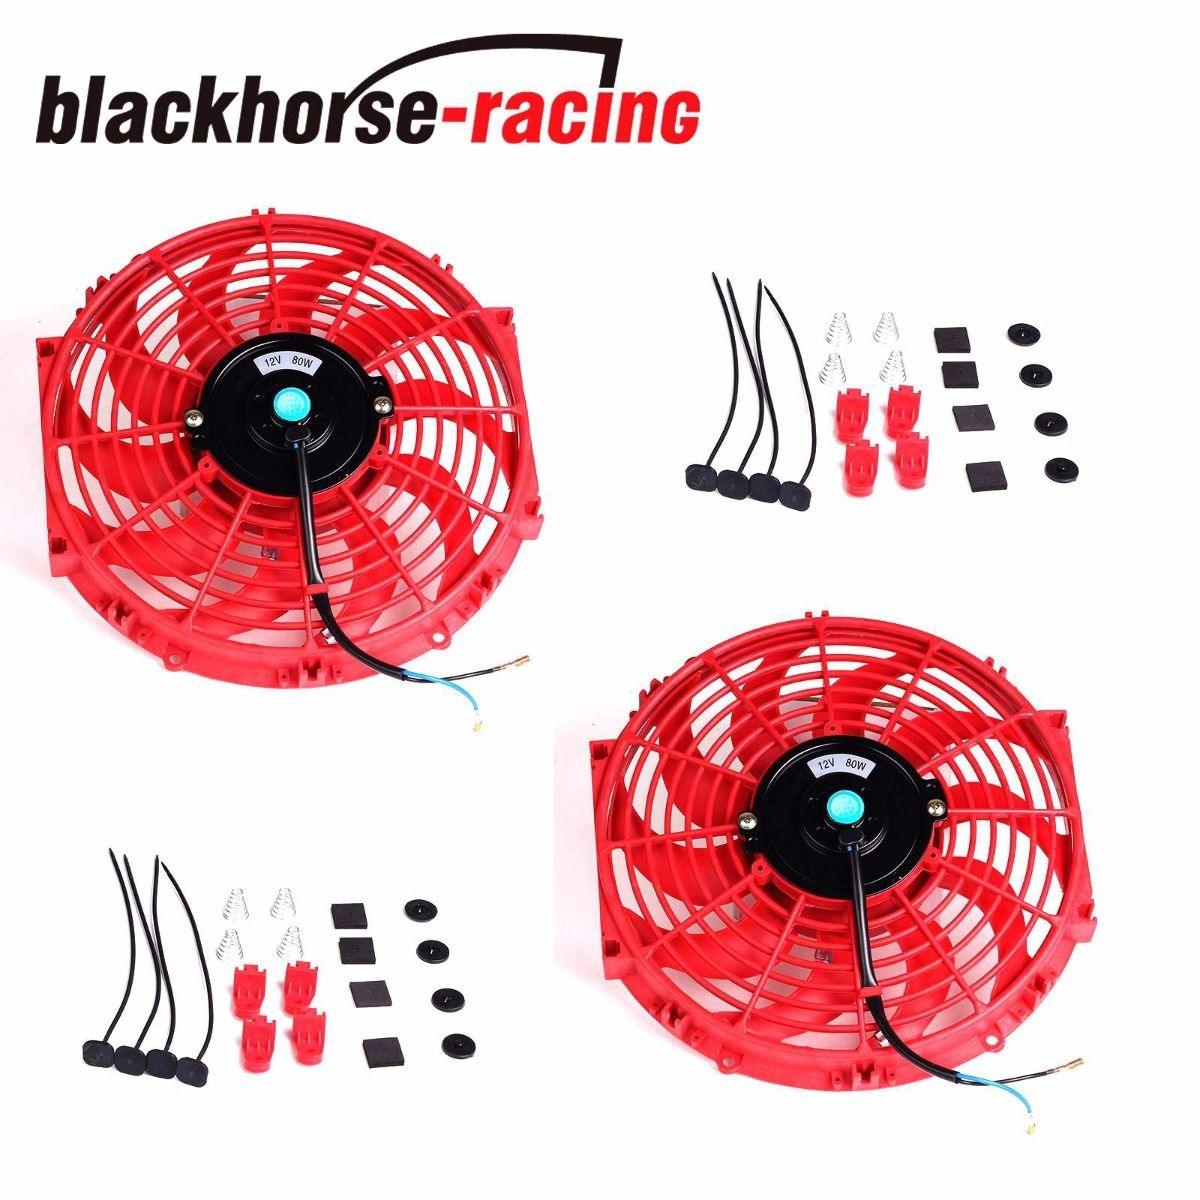 2X12'' RED ELECTRIC RADIATOR/ENGINE COOLING FAN+MOUNTING ZIP TIE KITS UNIVERSAL